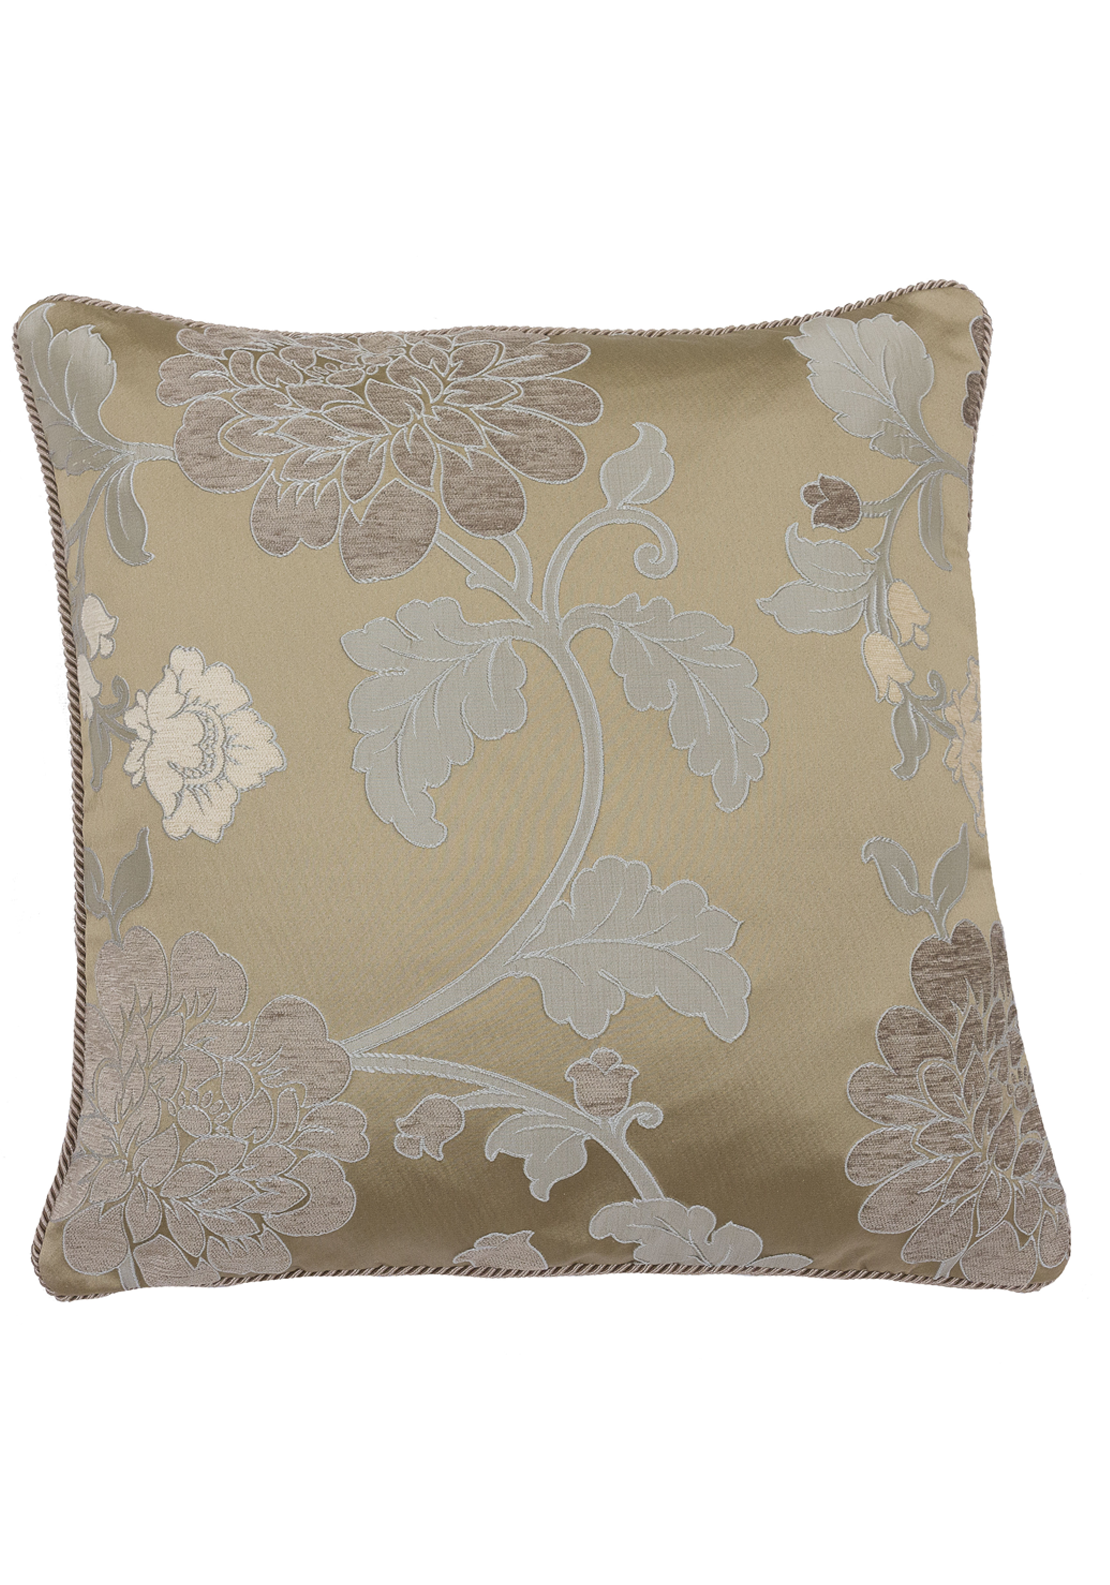 Scatterbox Lorenzo Chenille Floral Feather Filled Cushion, 45 x 45cm Antique